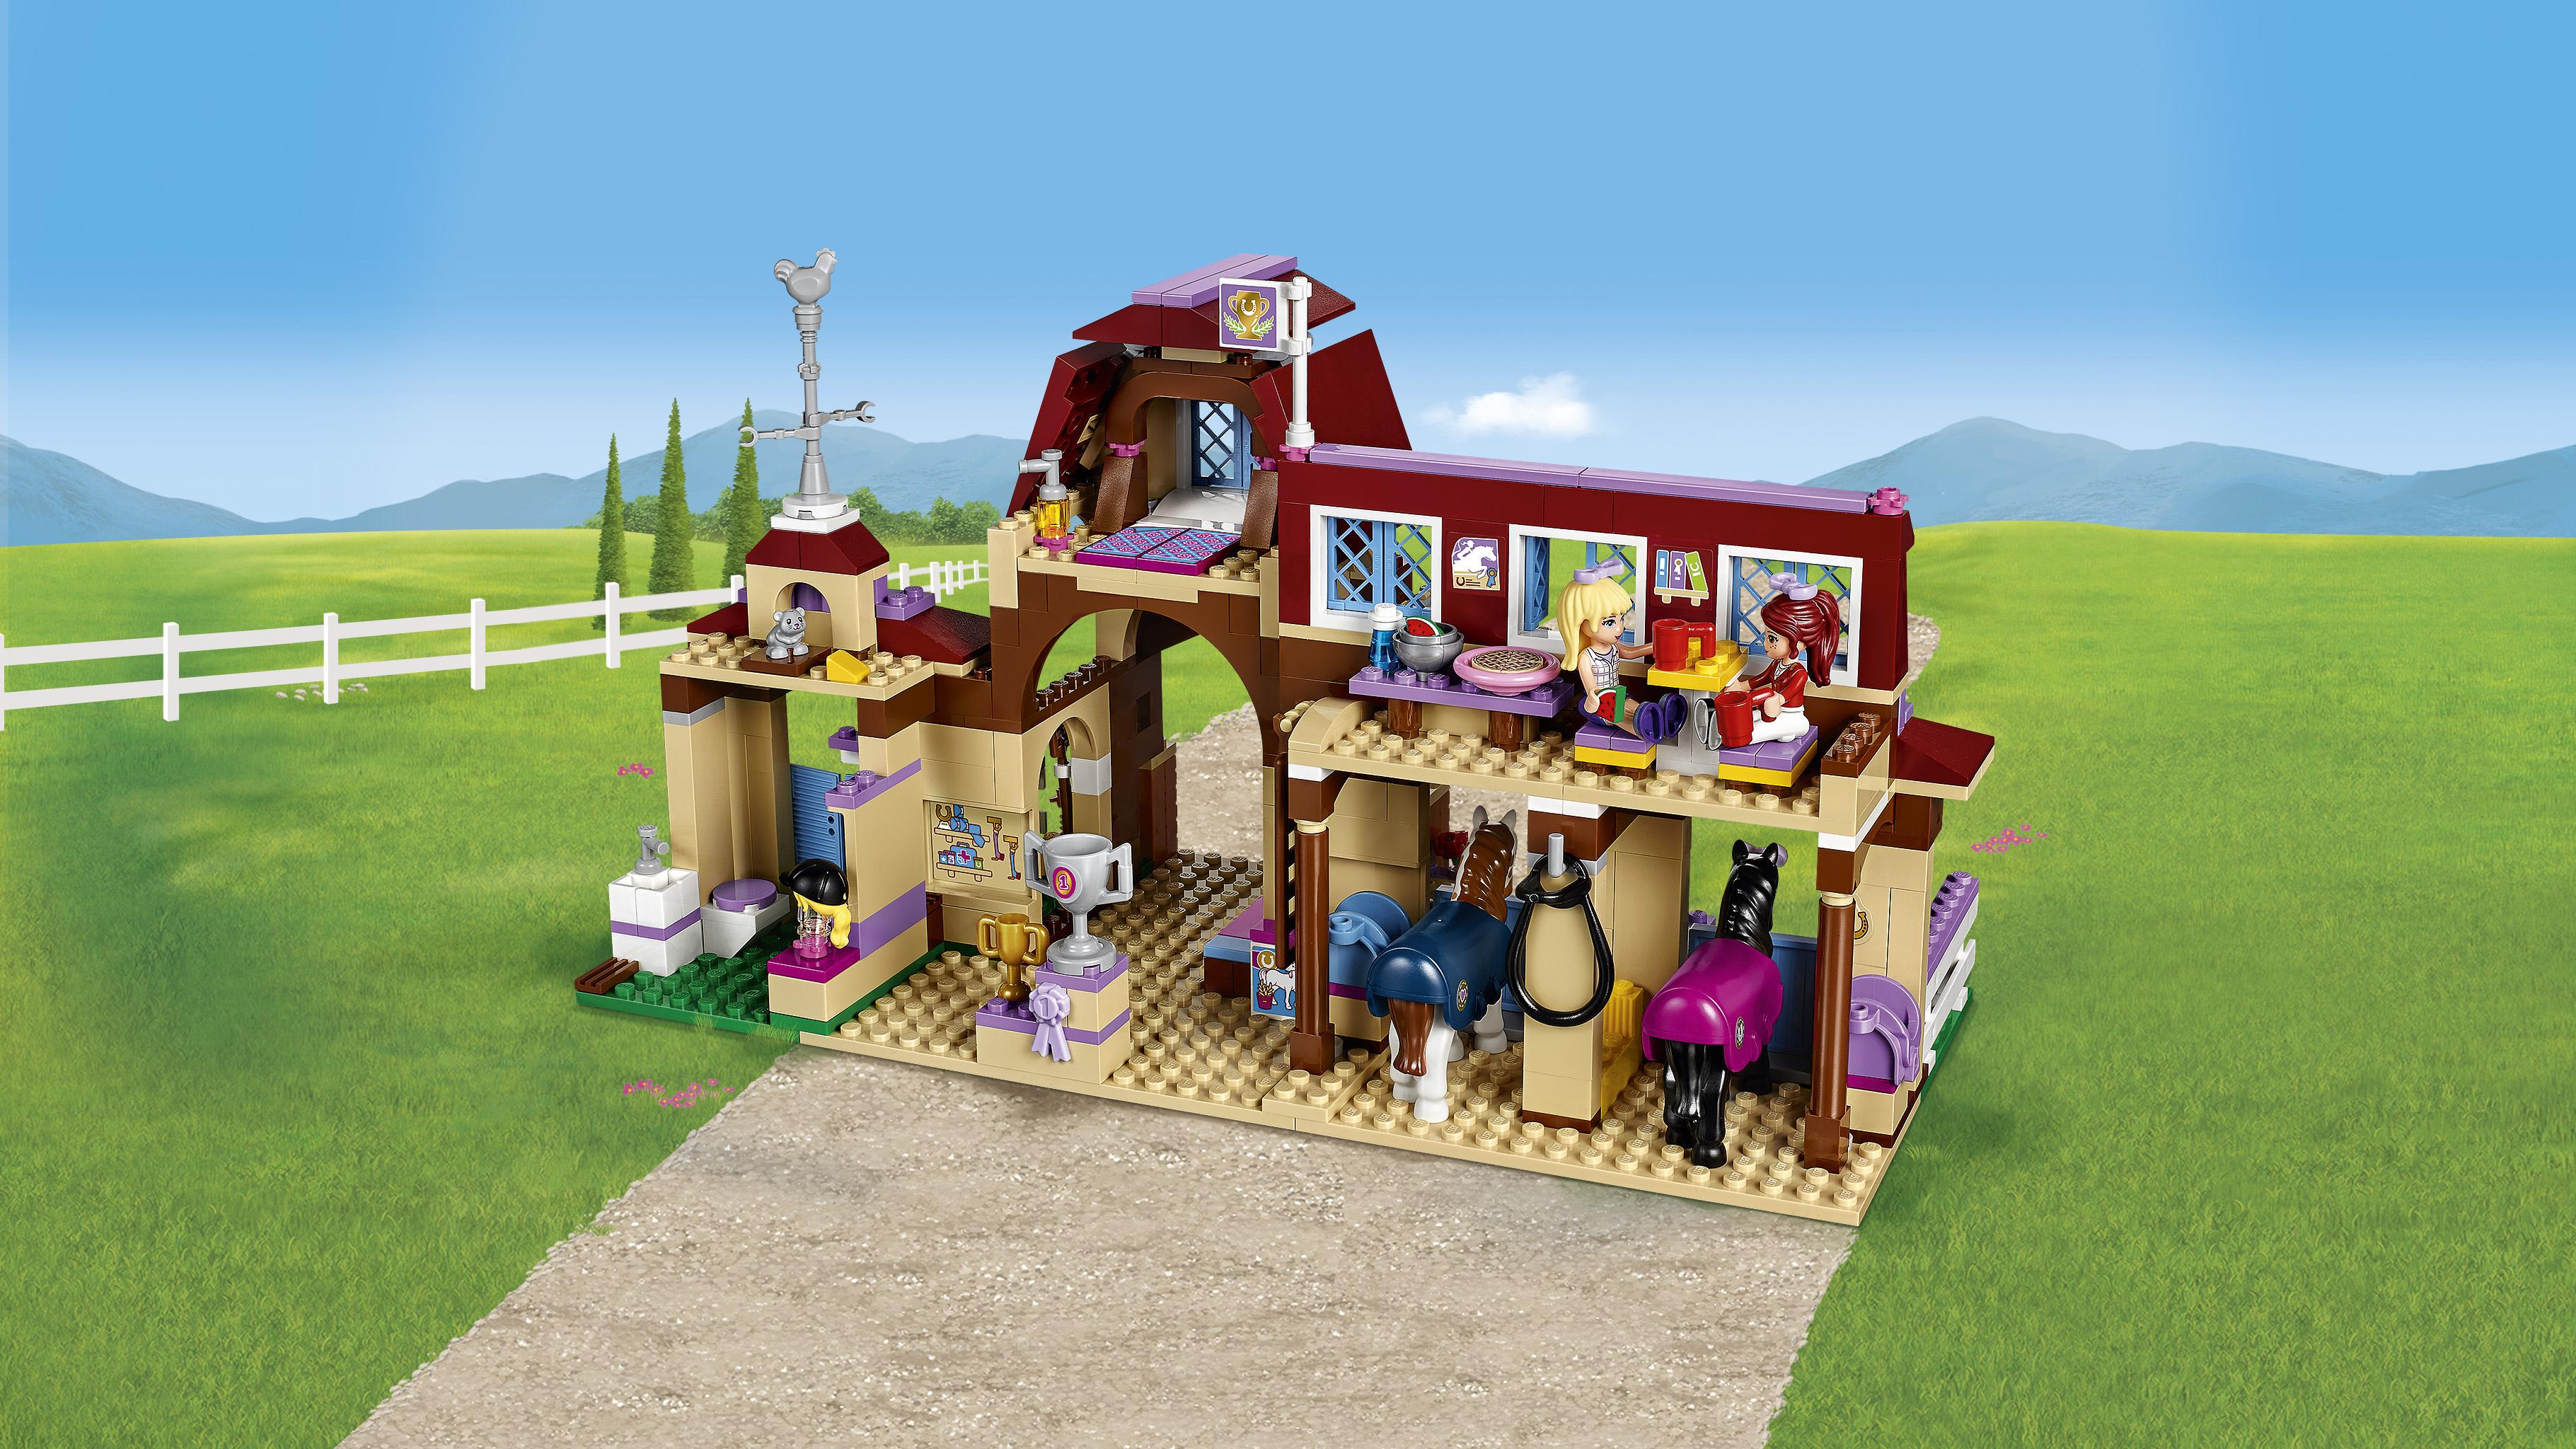 Lego Friends Horse Stable Instructions 41126